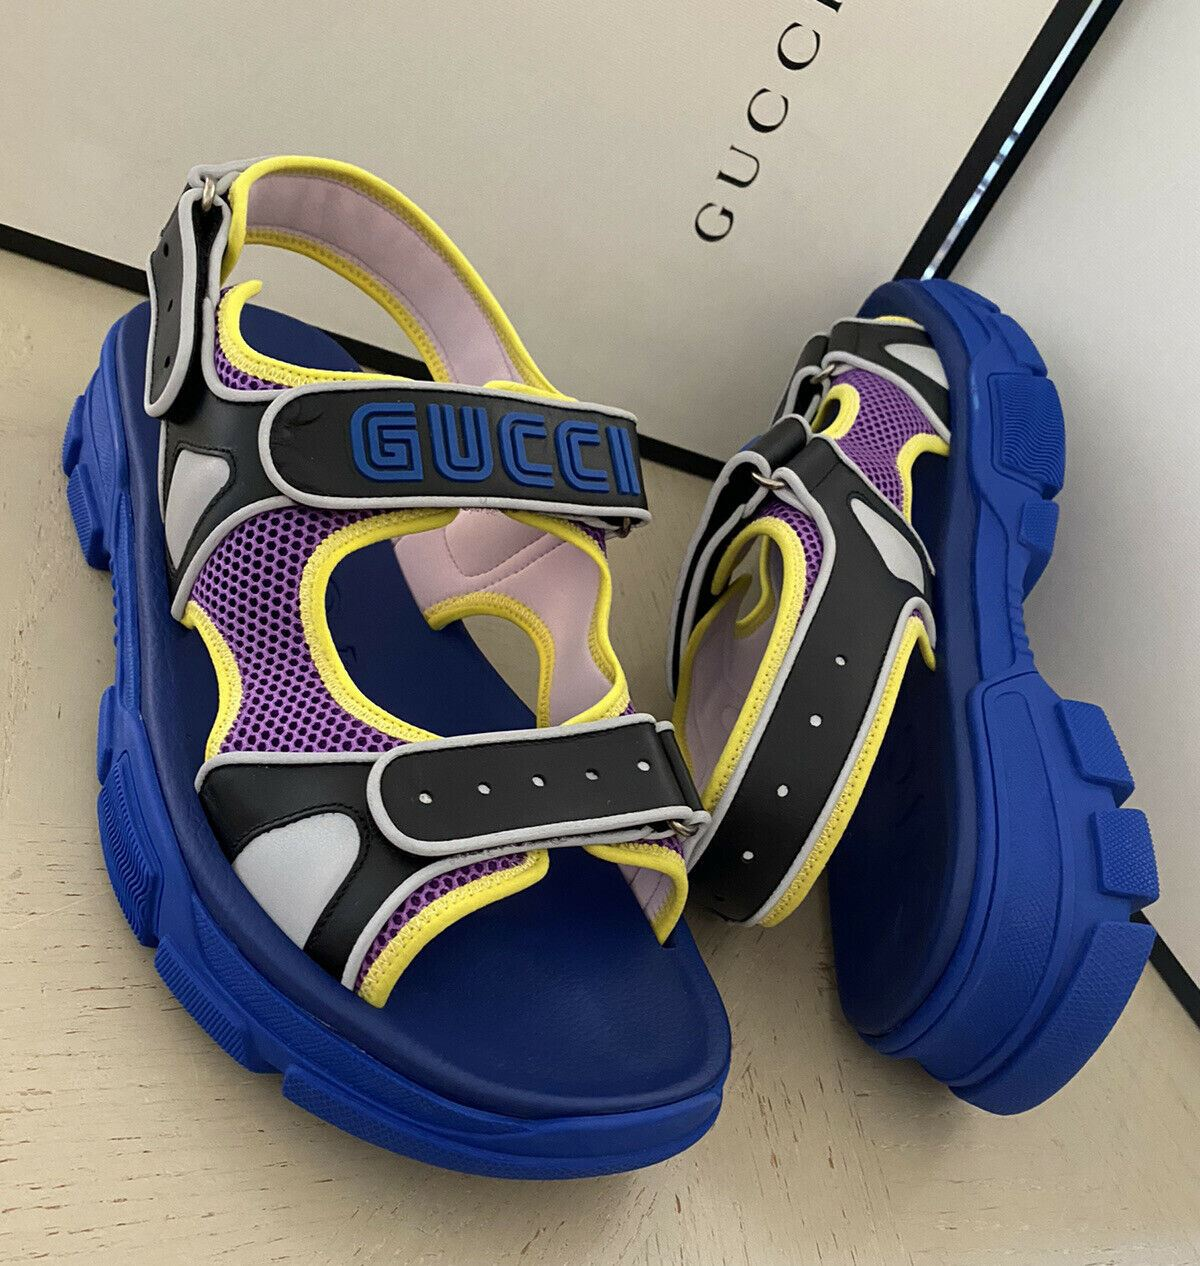 NIB $890 Gucci Mens Mesh Sega Sandal Shoes Blue/Purple/Black 15 US/14 UK Italy